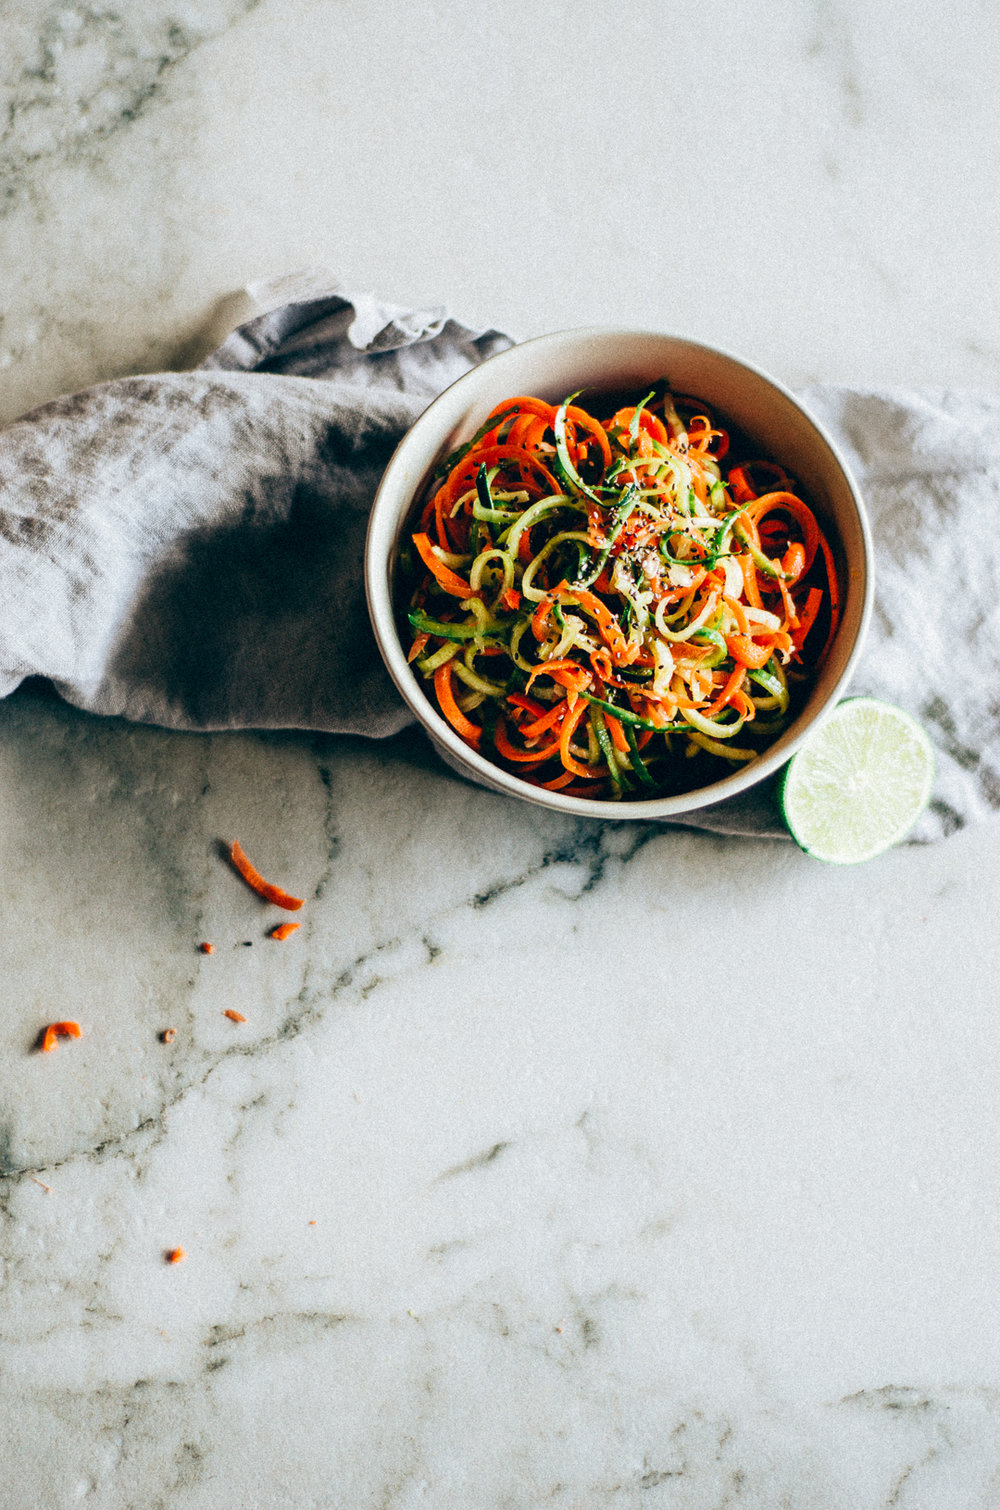 Spiralized Asian Salad Recipe with carrot & cucumber featuring a spicy lime sauce. Reminds me of food I ate in singapore. thenomadicwife.com